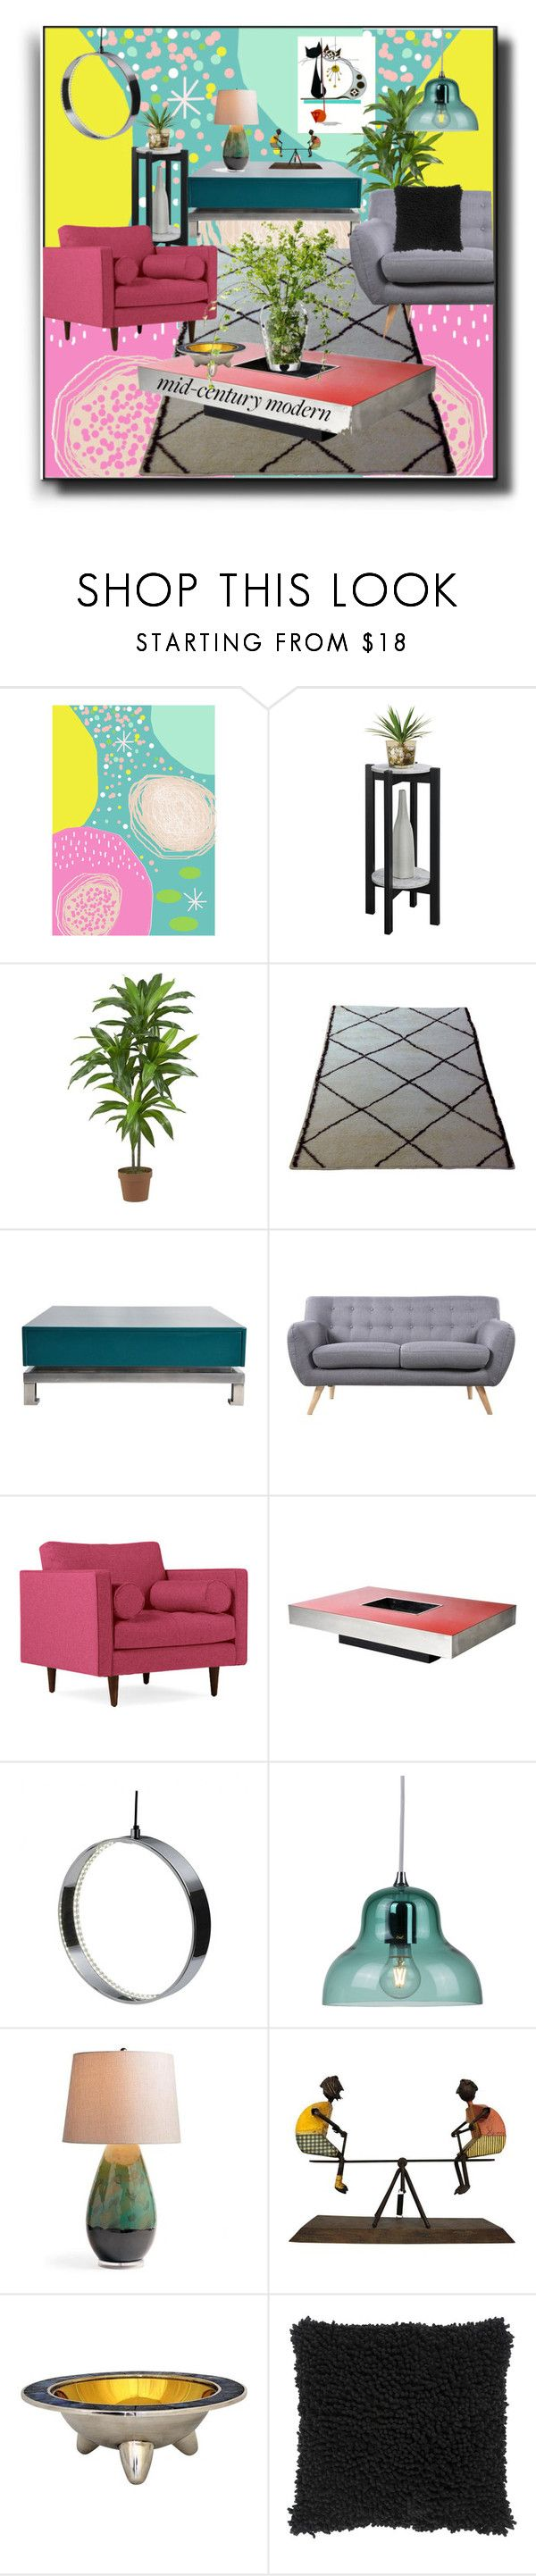 """""""Modern Home"""" by kelly-floramoon-legg on Polyvore featuring interior, interiors, interior design, home, home decor, interior decorating, Convenience Concepts, Nearly Natural, Maison Jansen and Madison"""